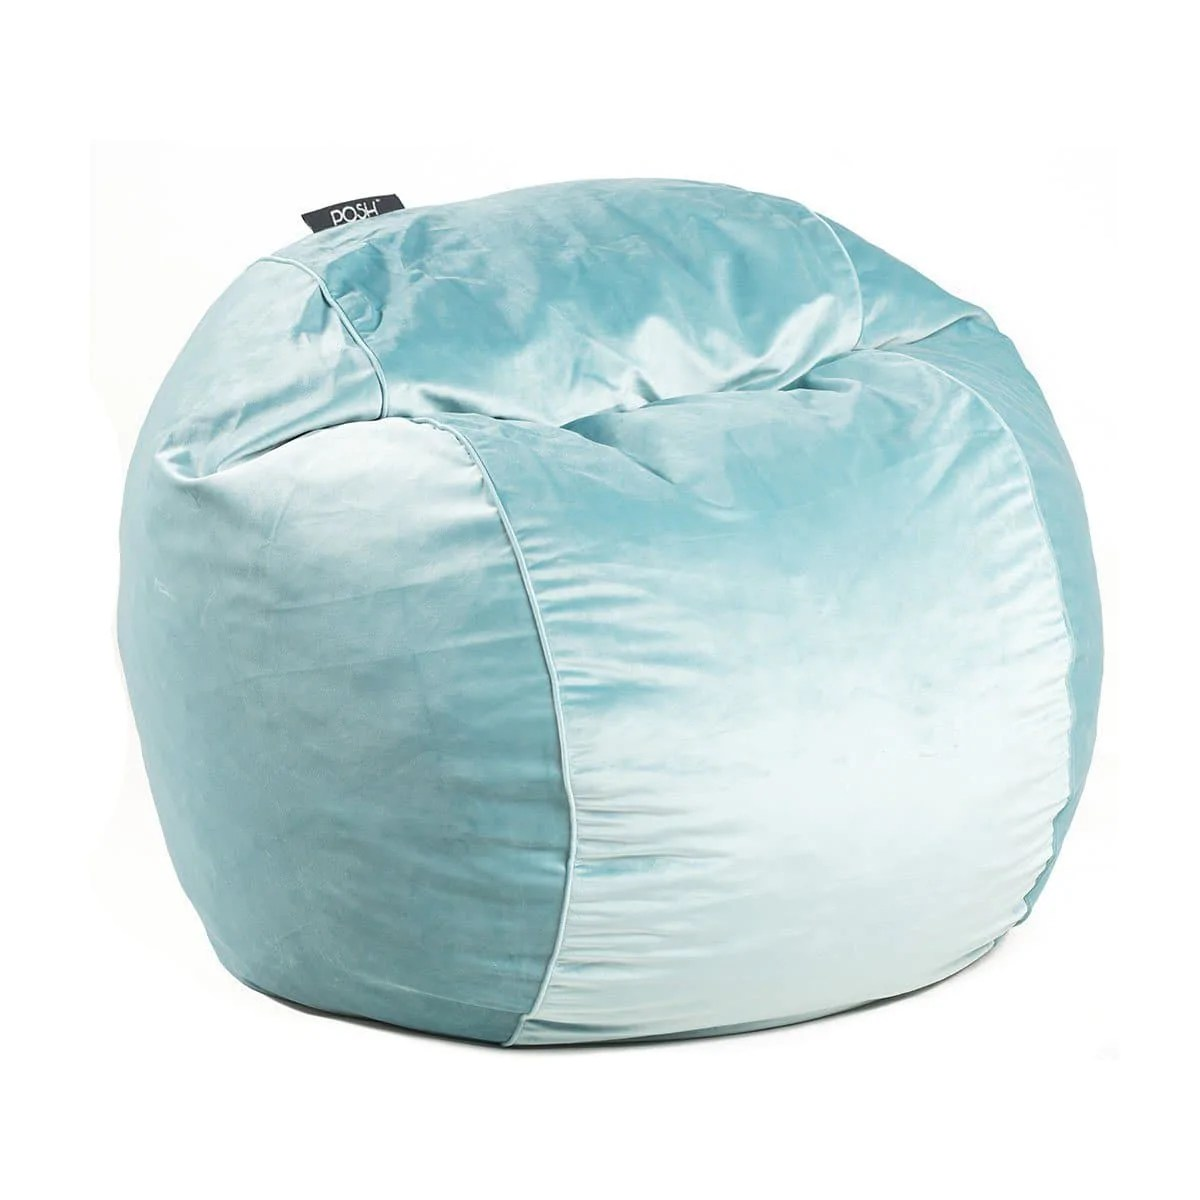 bean bags chair back support cordaroy s convertible there a bed inside posh product details